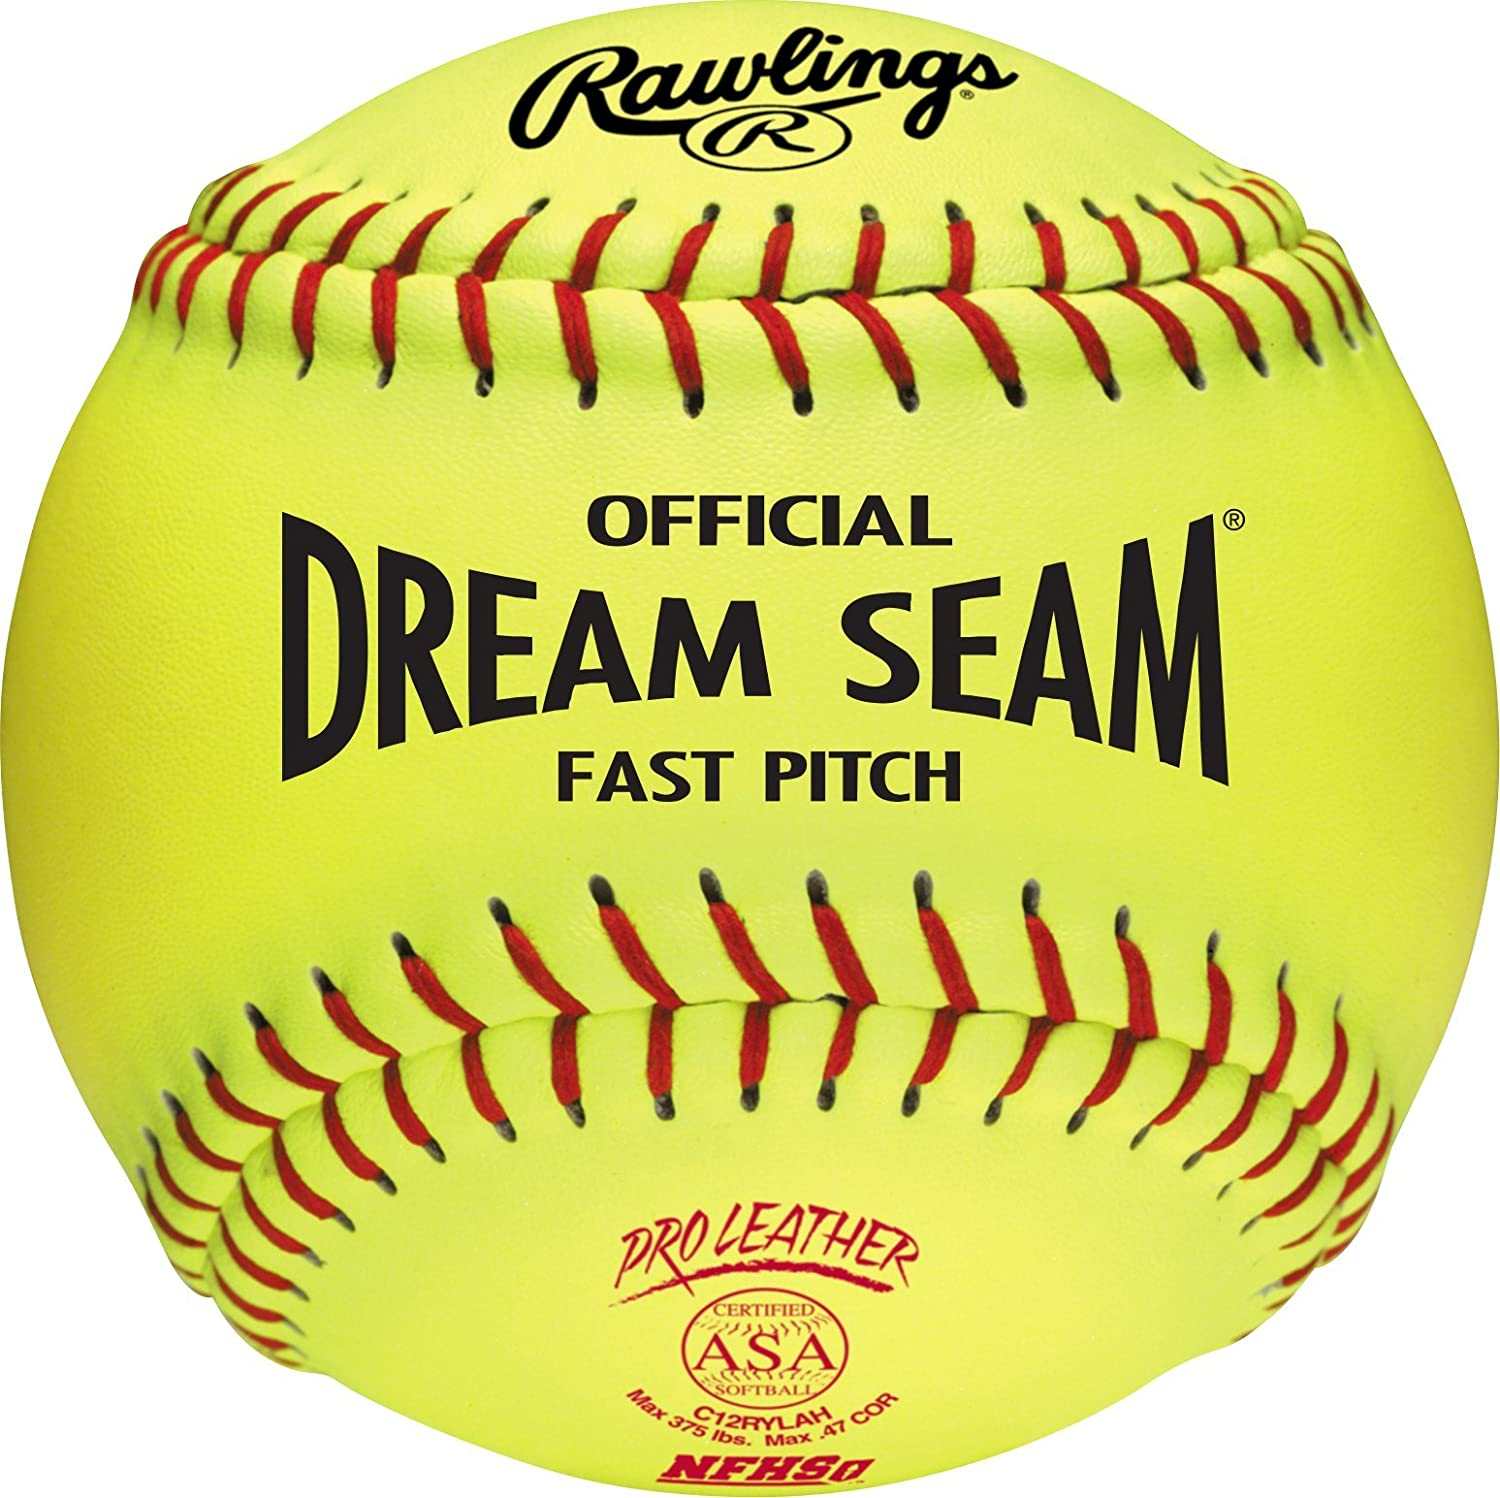 Rawlings Sporting Goods C12RYLAH Official ASA Dream Seam Fast Pitch Softballs (One Dozen), Yellow, Size 12 : Sports & Outdoors